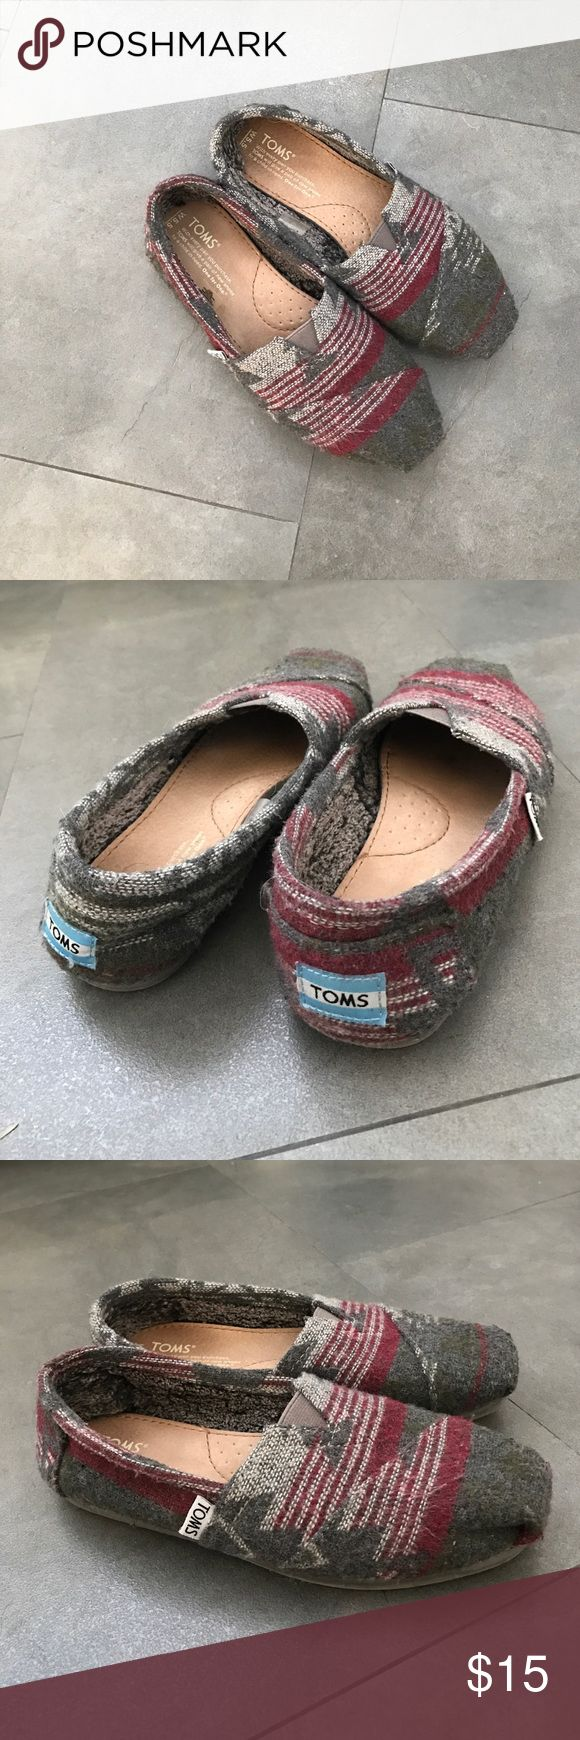 TOMS Aztec shoes, size 5.5 Maroon, White, Grey Aztec-inspired pattern TOMS shoes with soft fur lining. TOMS Shoes Flats & Loafers